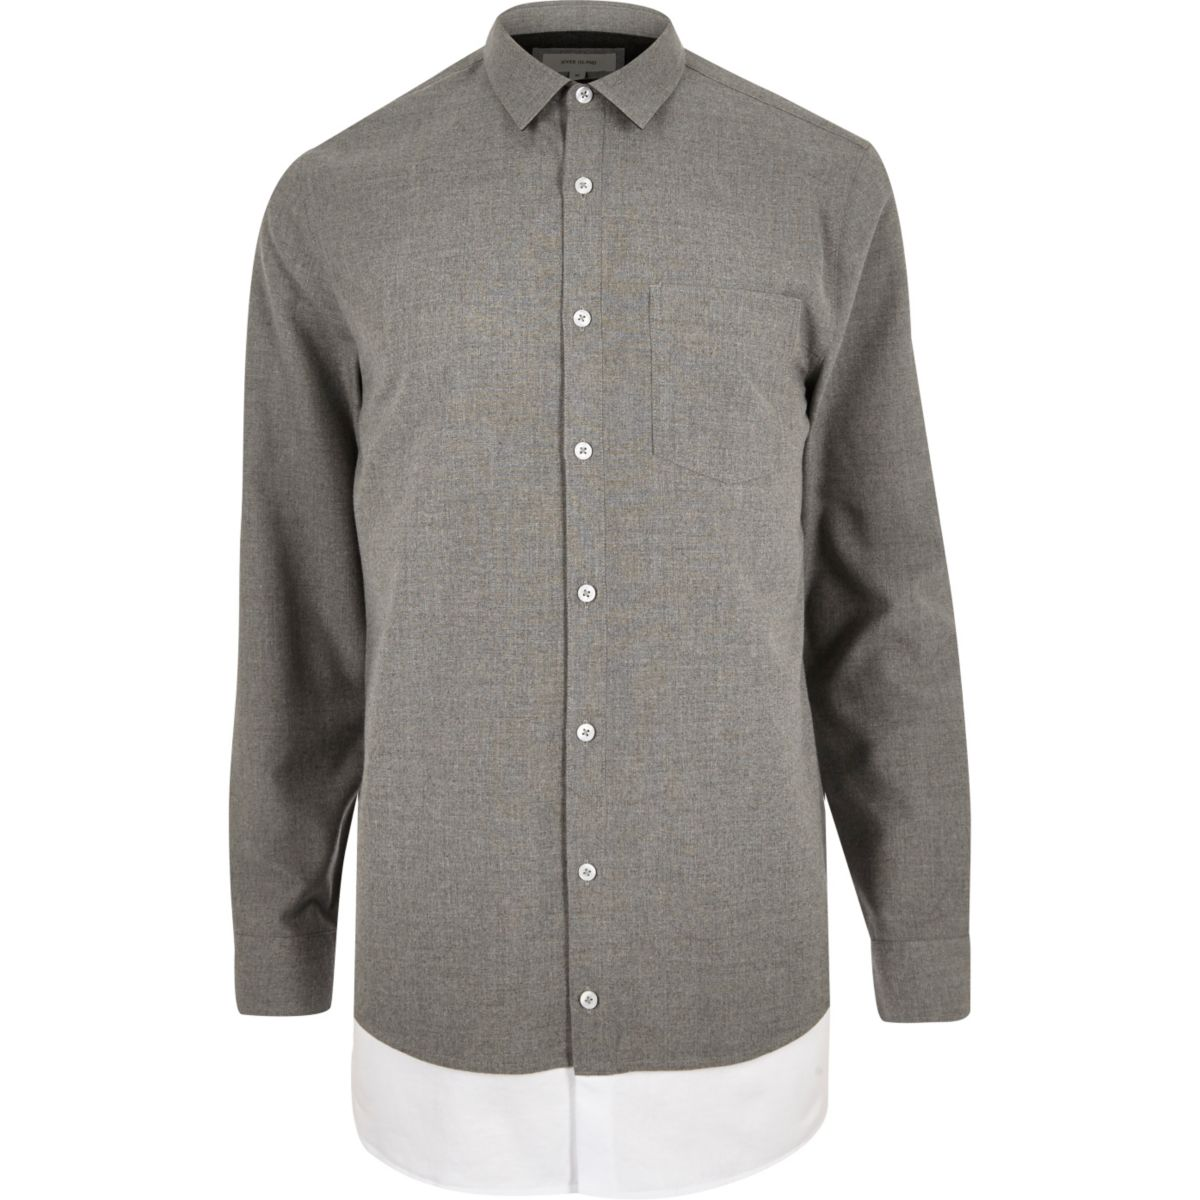 Grey casual layered longline shirt